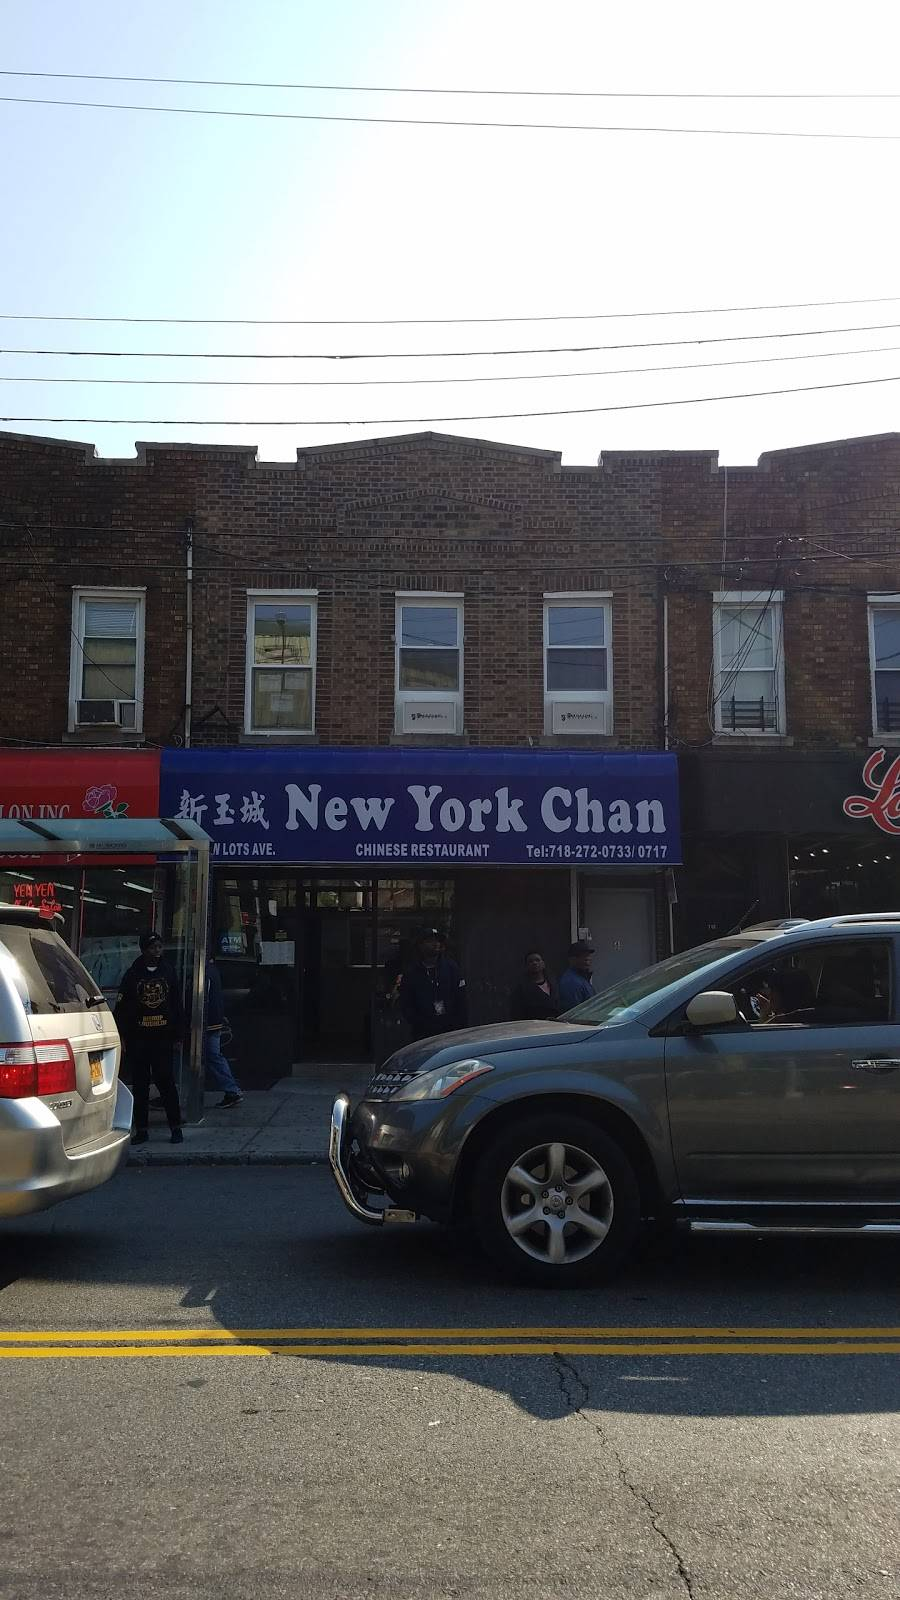 New York Chan   restaurant   744 New Lots Ave, Brooklyn, NY 11207, USA   7182720733 OR +1 718-272-0733